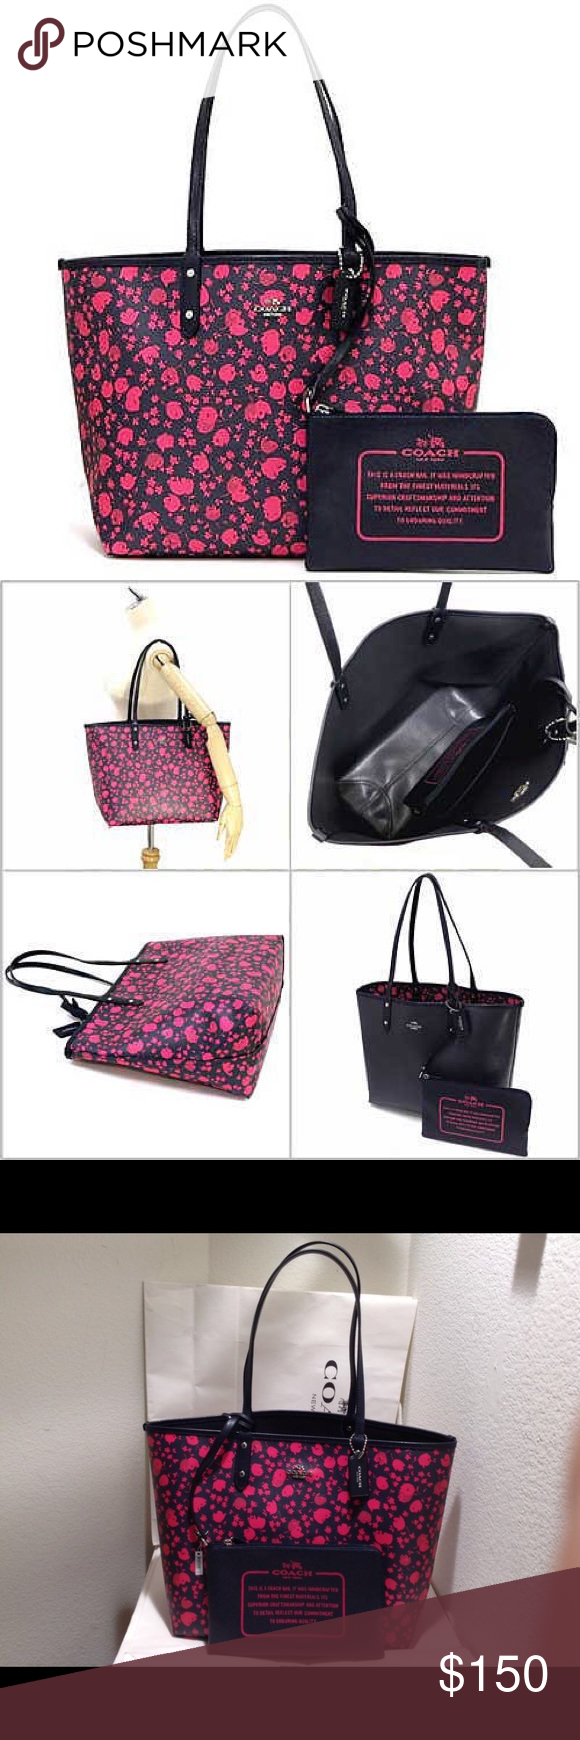 c5f75e8a4 Prairie calico reversible city tote midnight pink Authentic large coach  prairie calico reversible city tote handbag midnight pink/ruby.